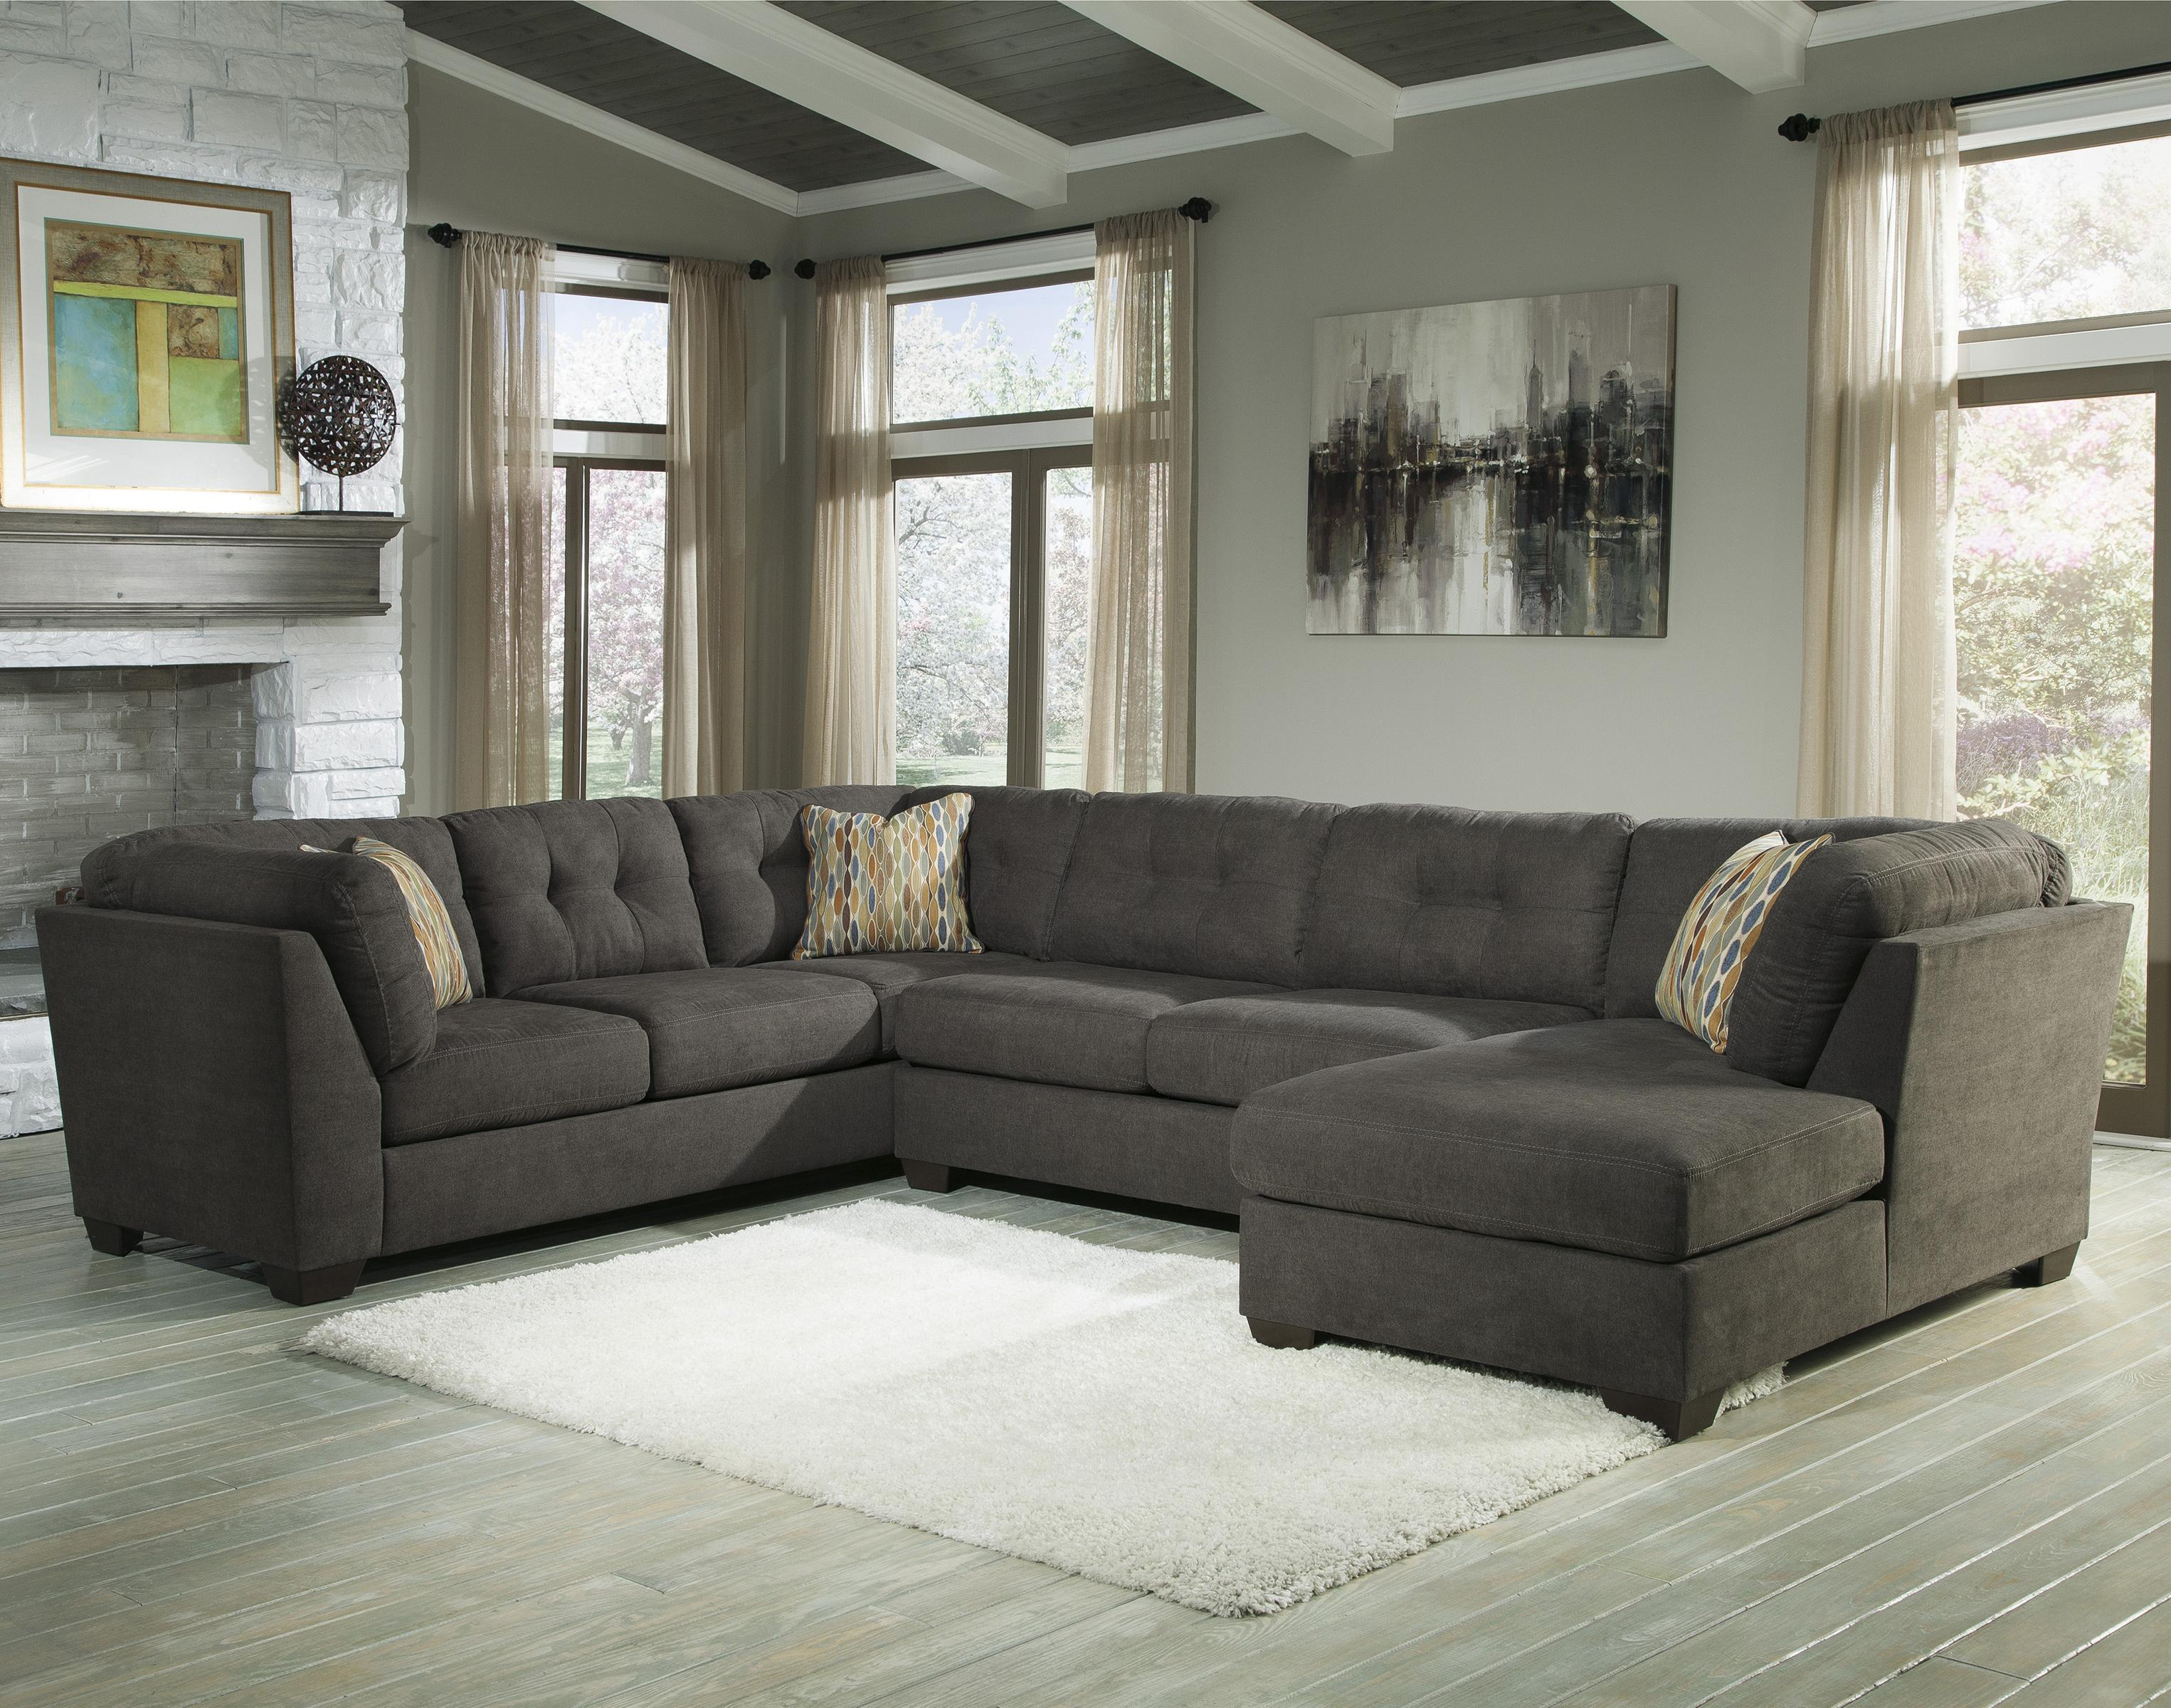 Benchcraft Delta City Steel 3 Piece Sectional W Sleeper Right Chaise